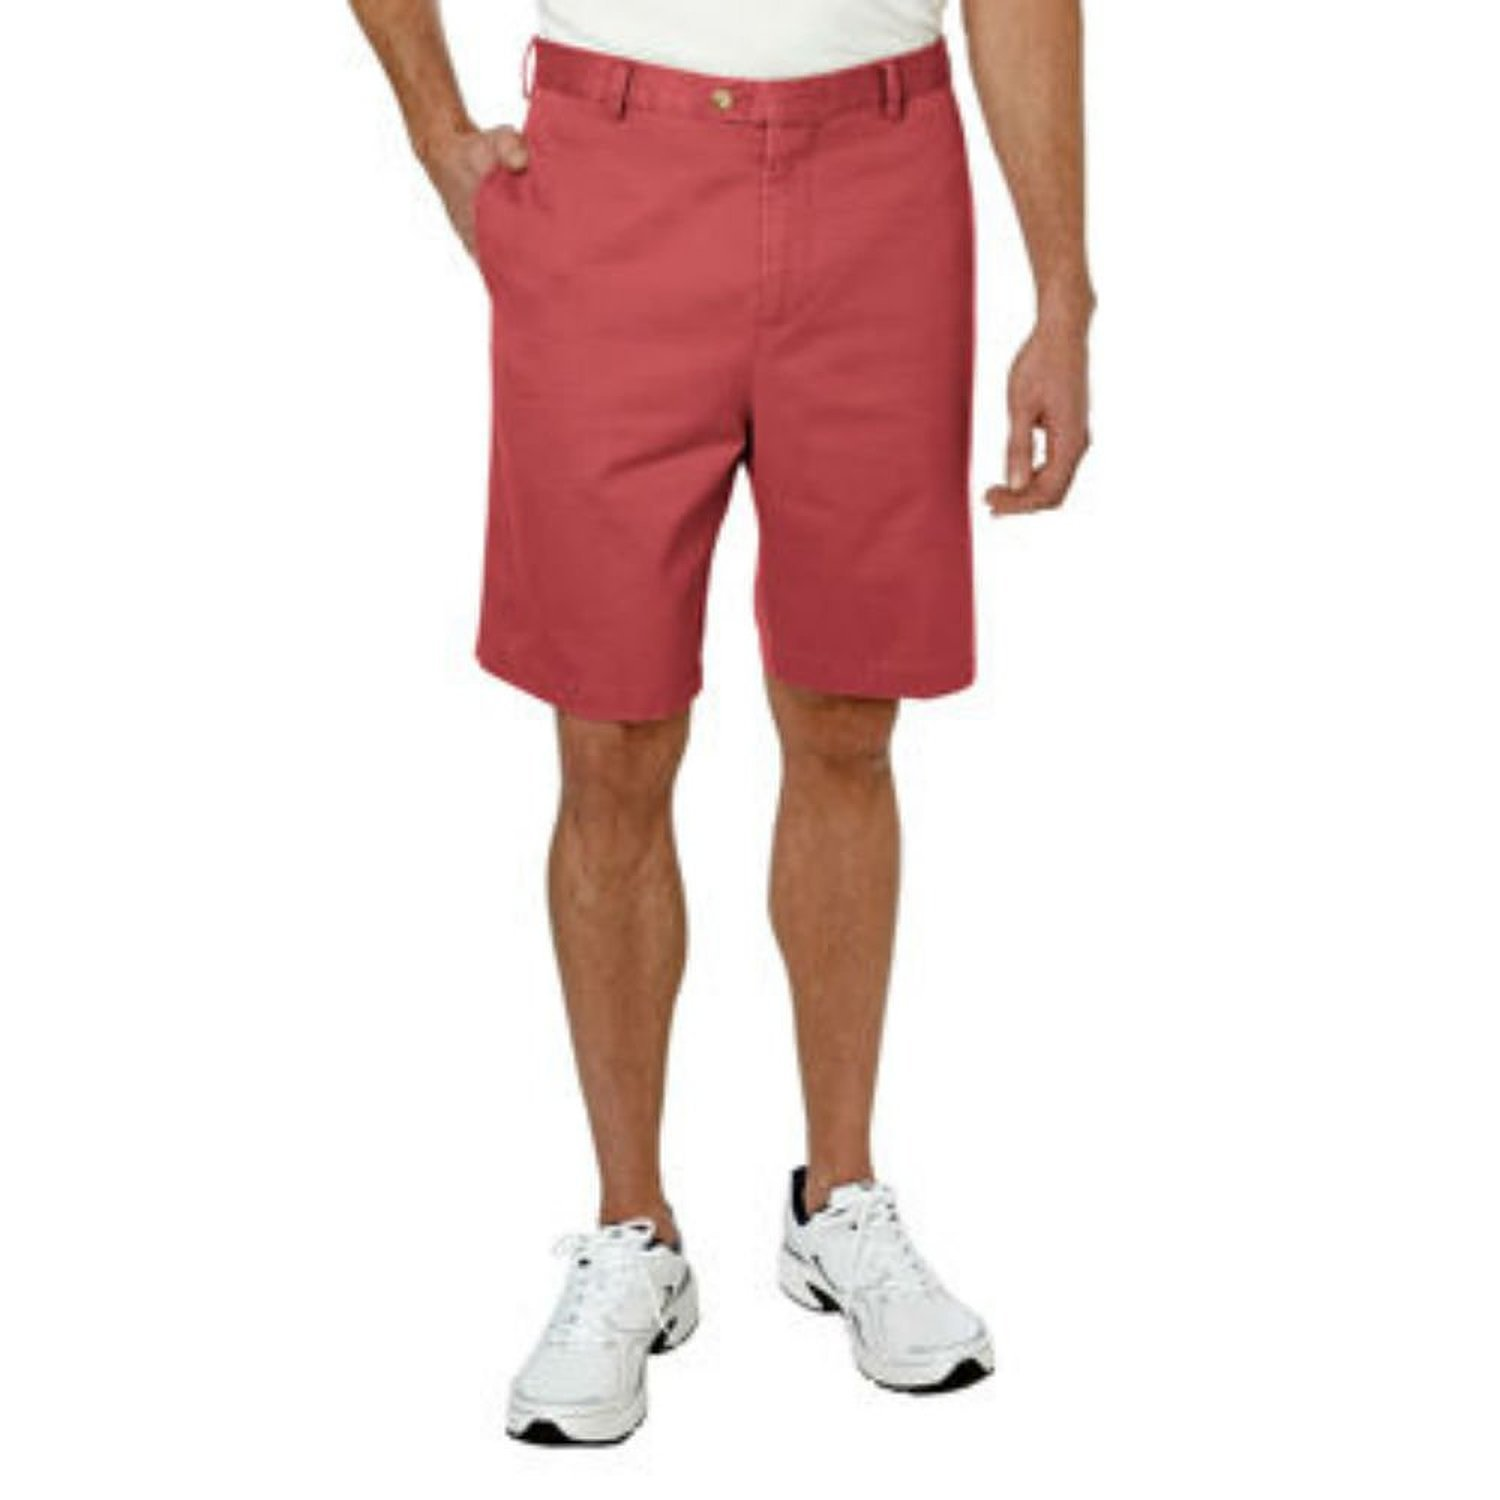 Kirkland Signature Men's Soft Pima Cotton Washed Twill Shorts size 40